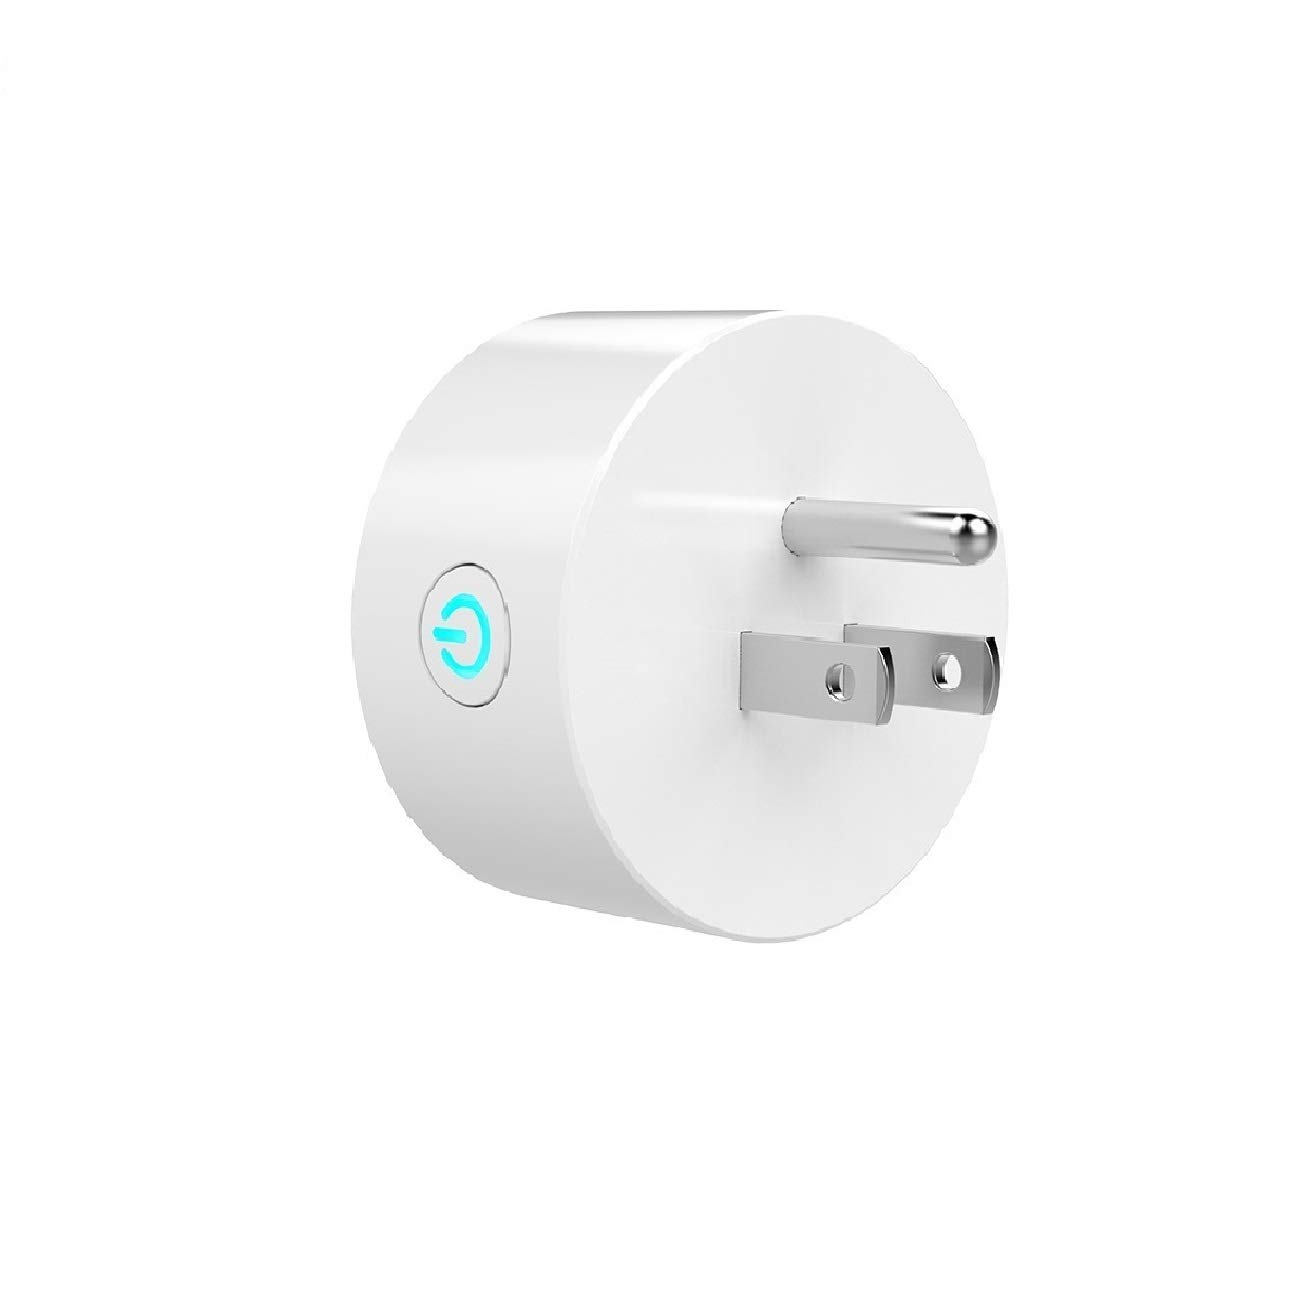 Mini Smart Socket Wifi Plug US Work with Alexa Echo Dot Voice Control No Hub Required Timing Function (2 Pack) by EVO-SMART (Image #3)